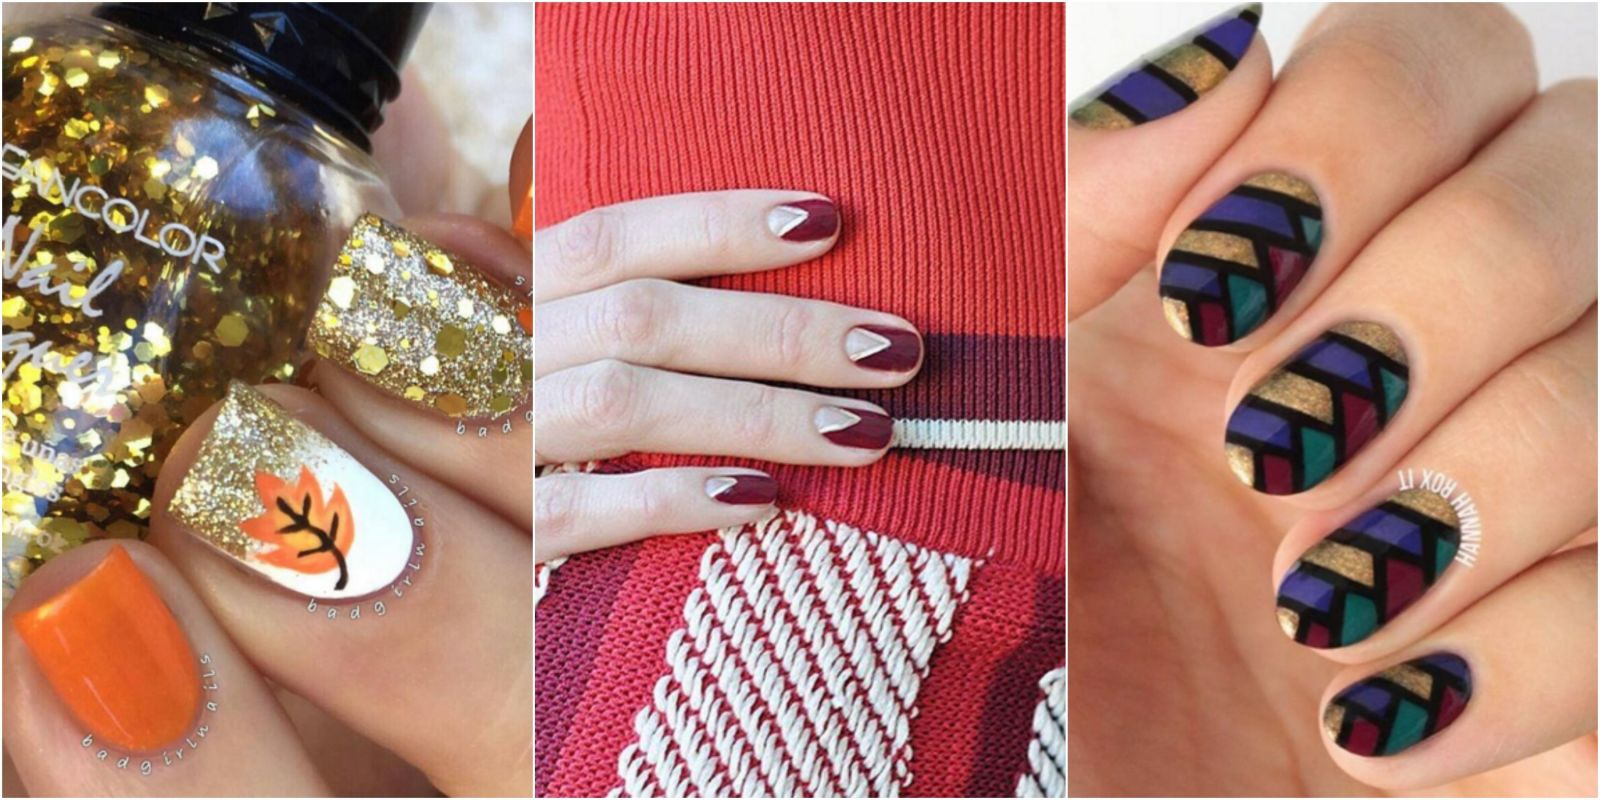 The Latest Nail Trends - Next Step Beauty